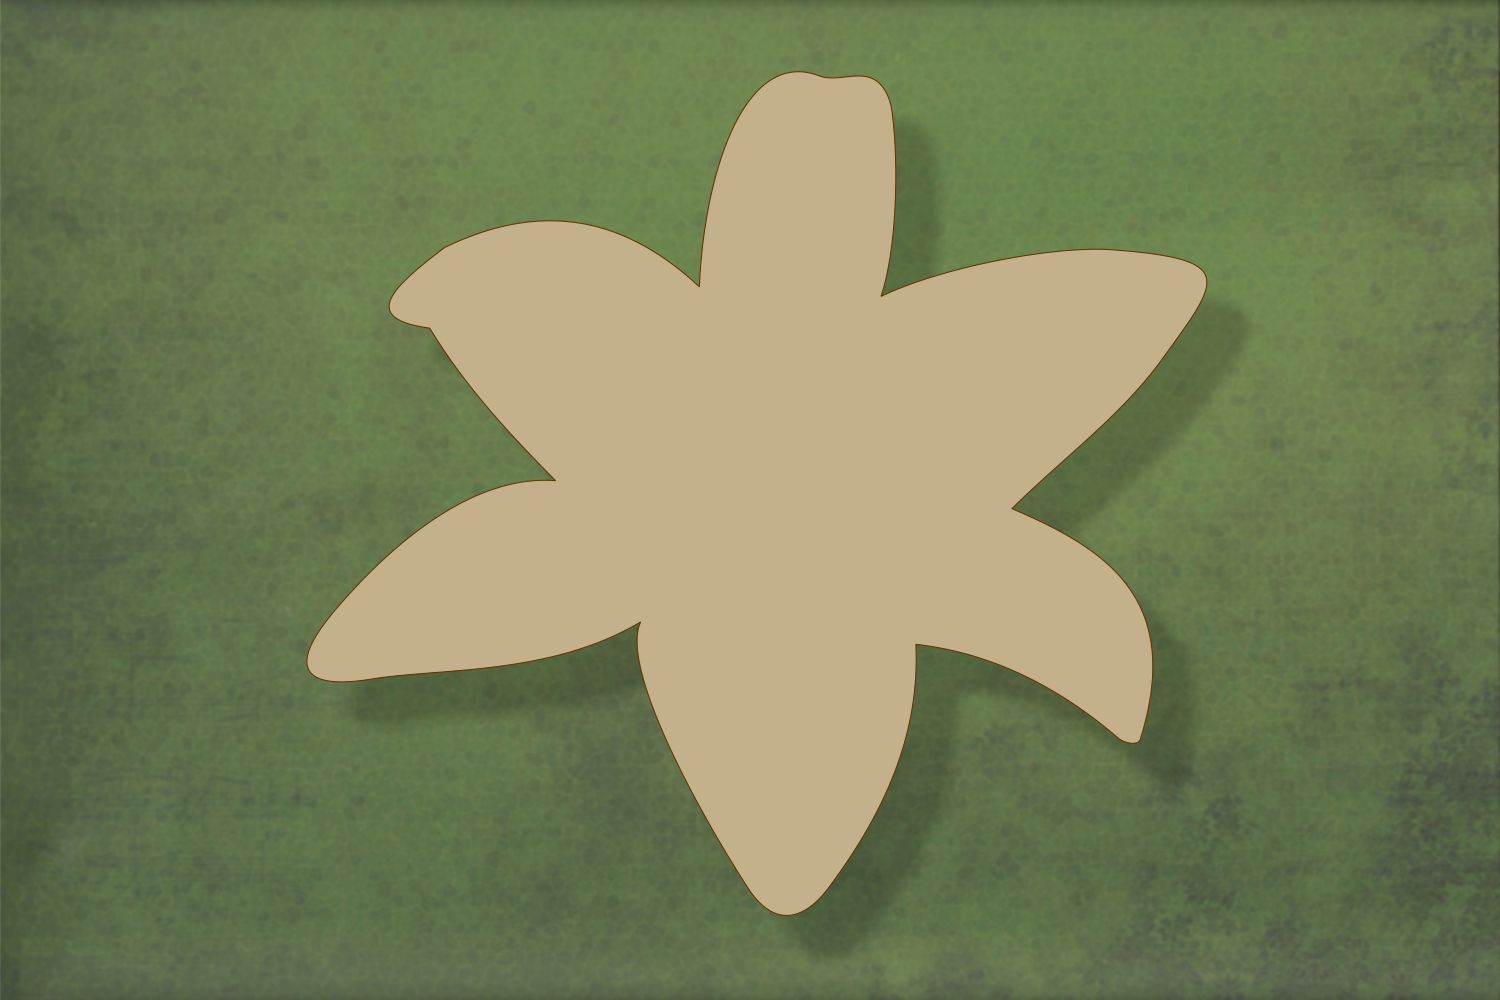 Laser cut, blank wooden Lily shape for craft